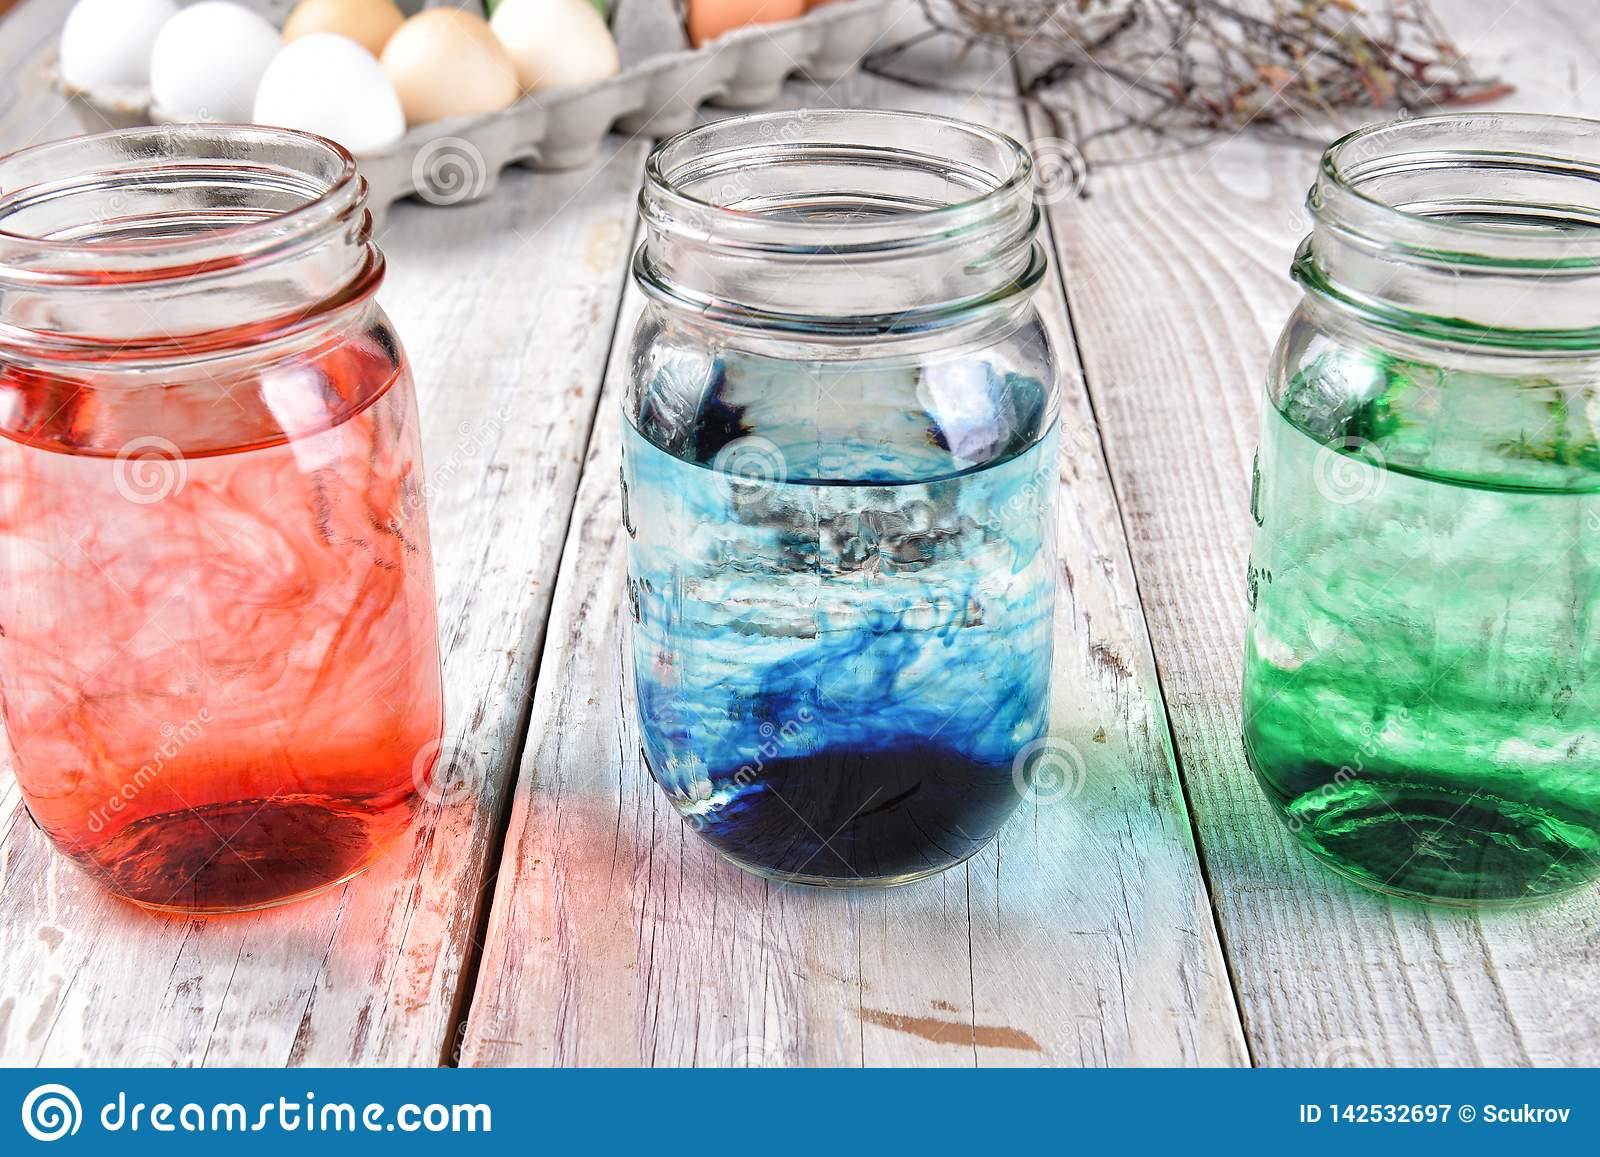 Dying Easter Eggs In Mason Jars Stock Image Image Of Boiled Ideas 142532697